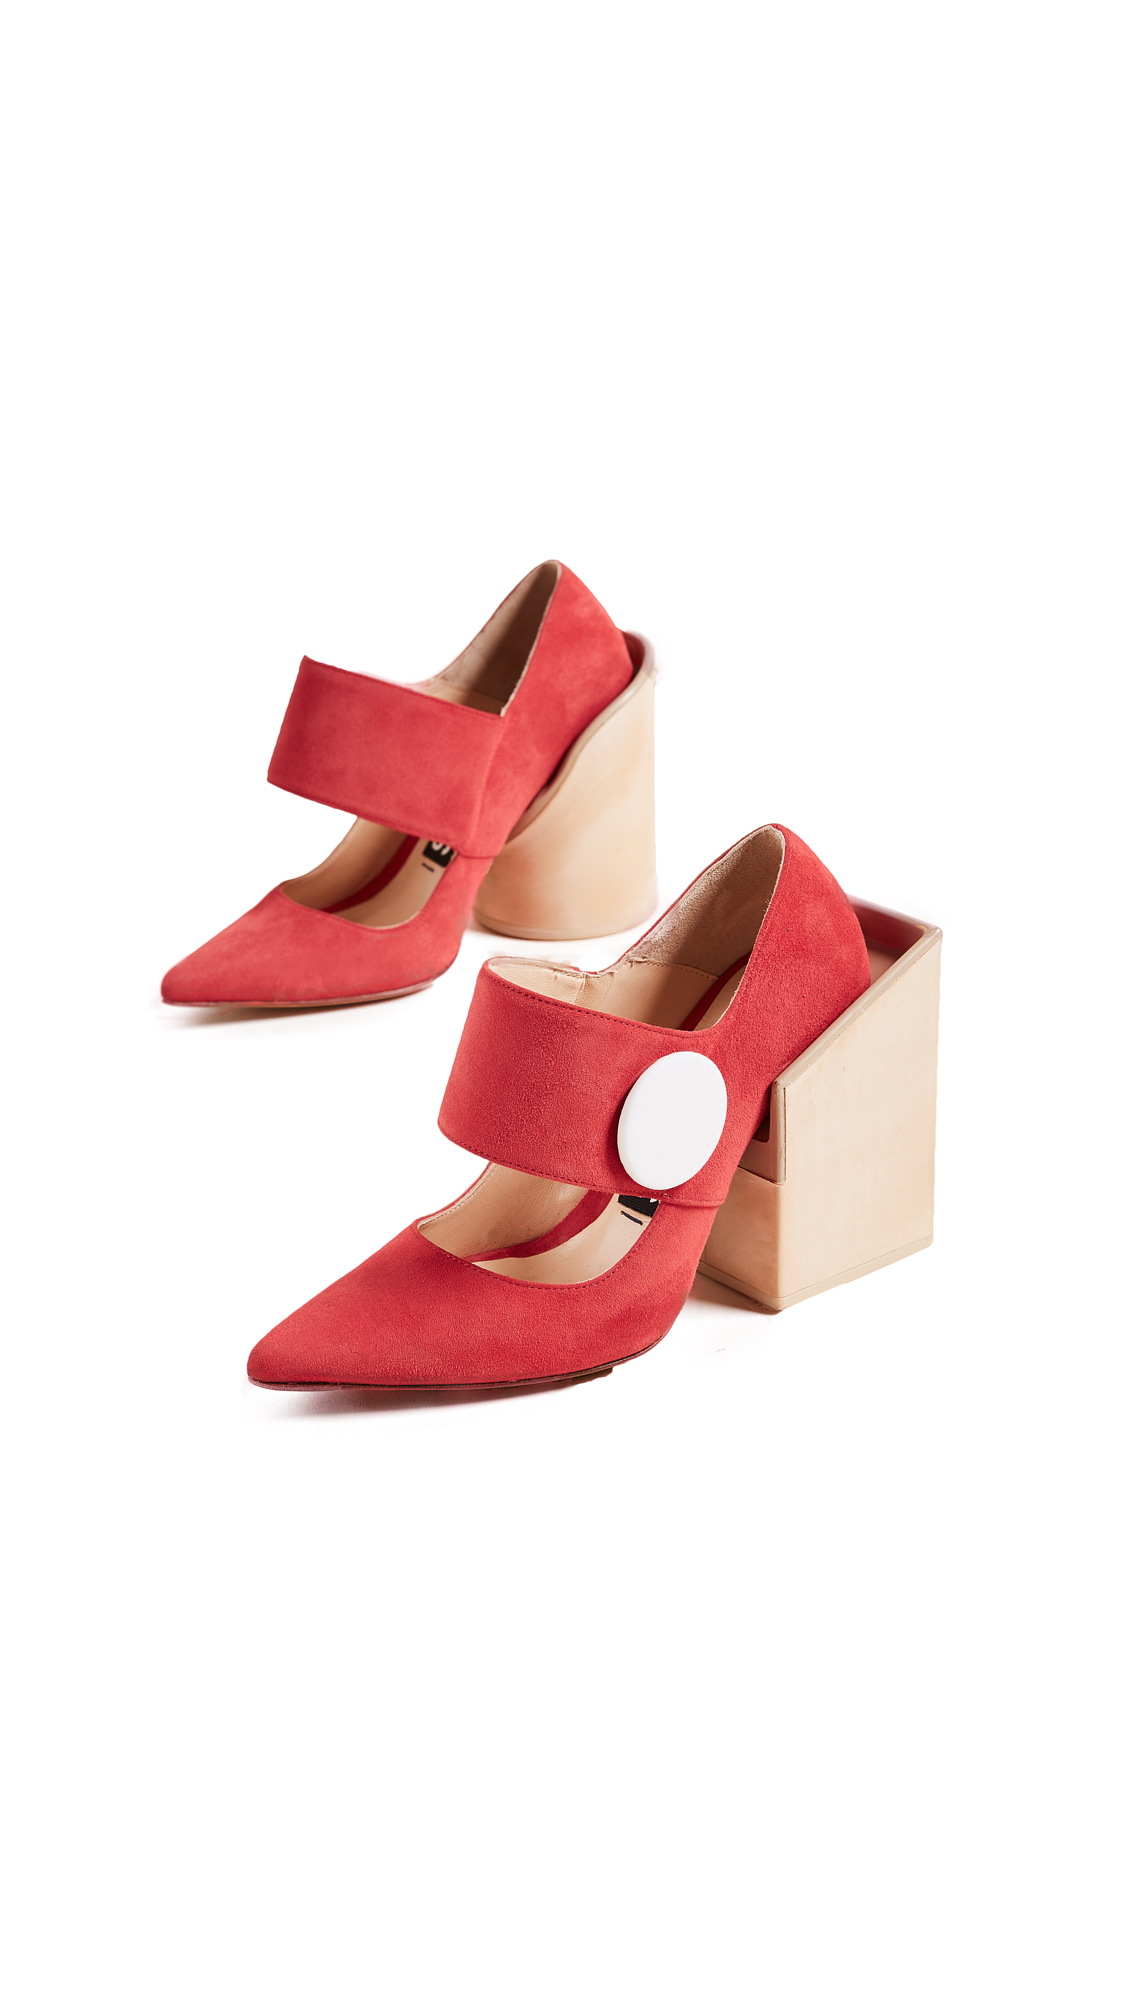 Jacquemus Large Button Pumps - Red